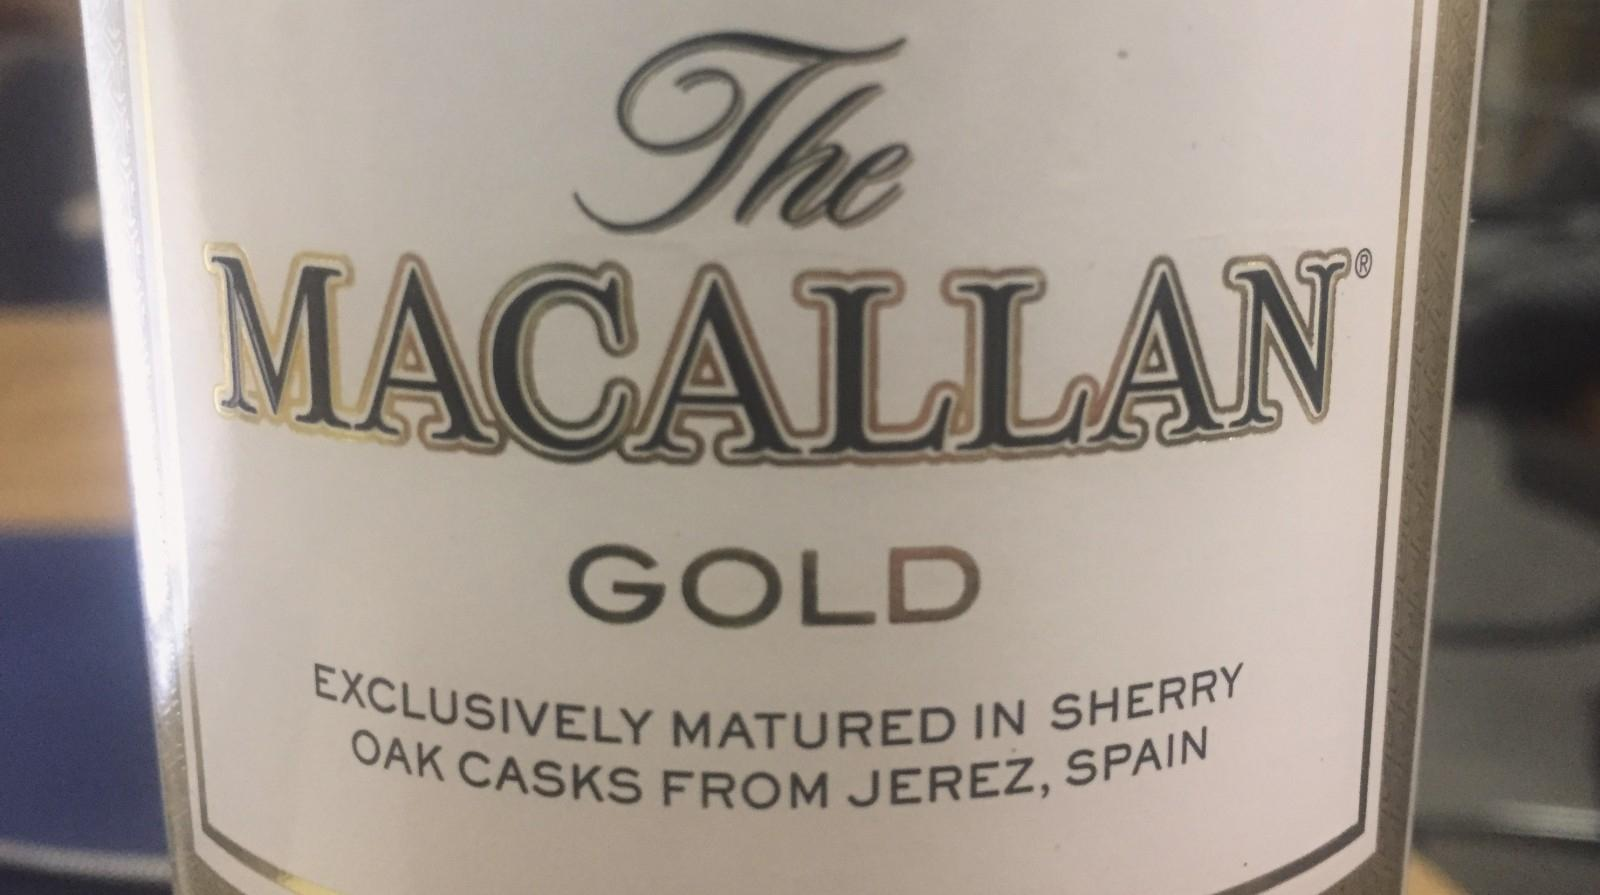 The Macallan - Exclusively matured in Sherry oak casks